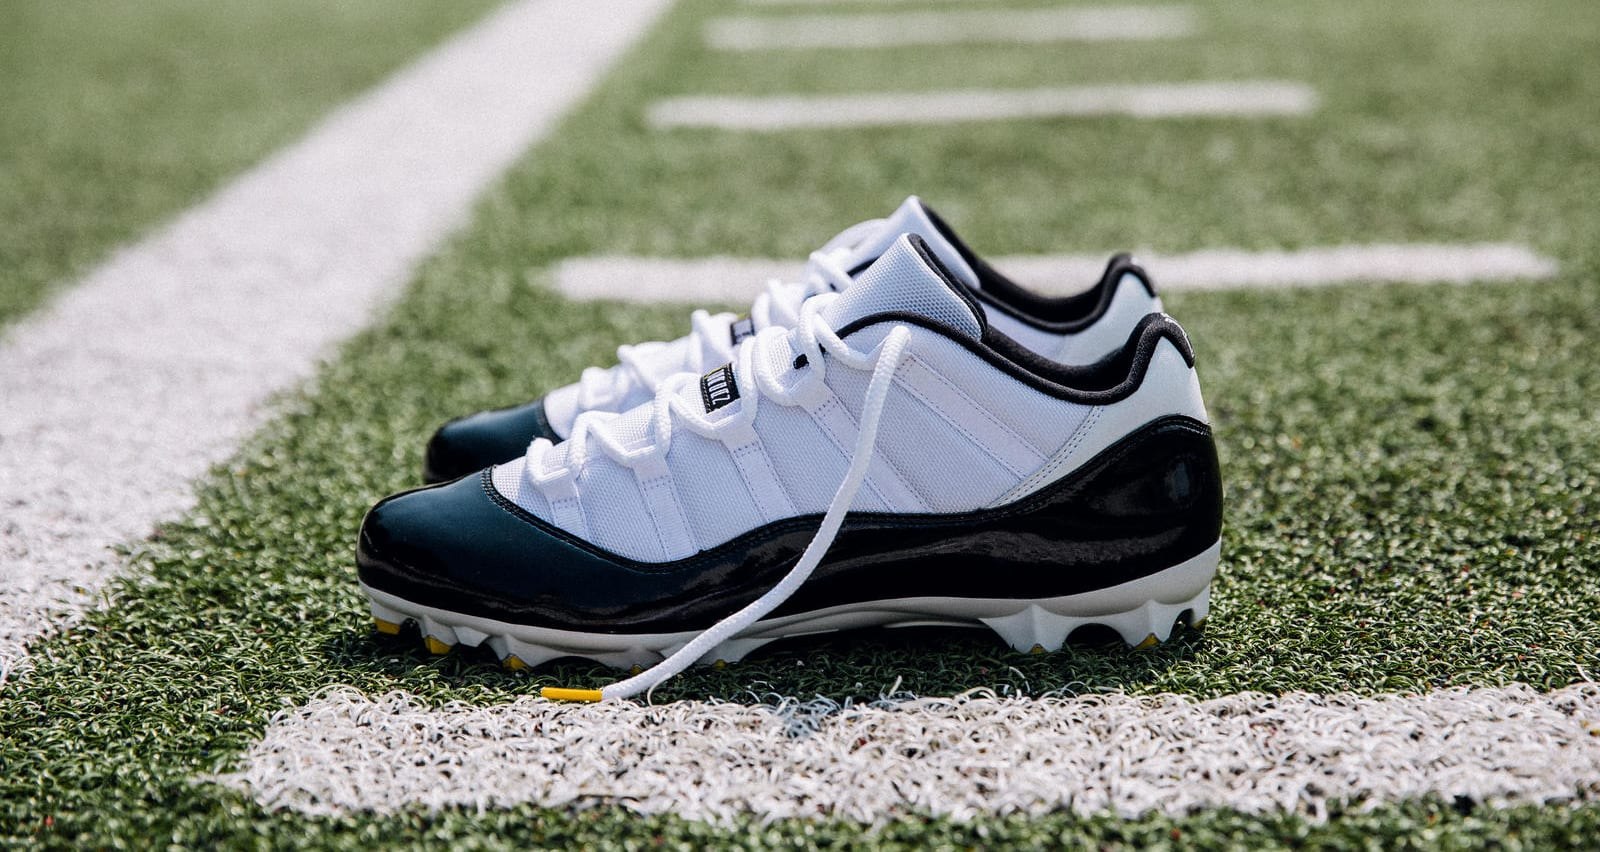 Air Jordan 11 Cleats Le'Veon Bell PE (Away)